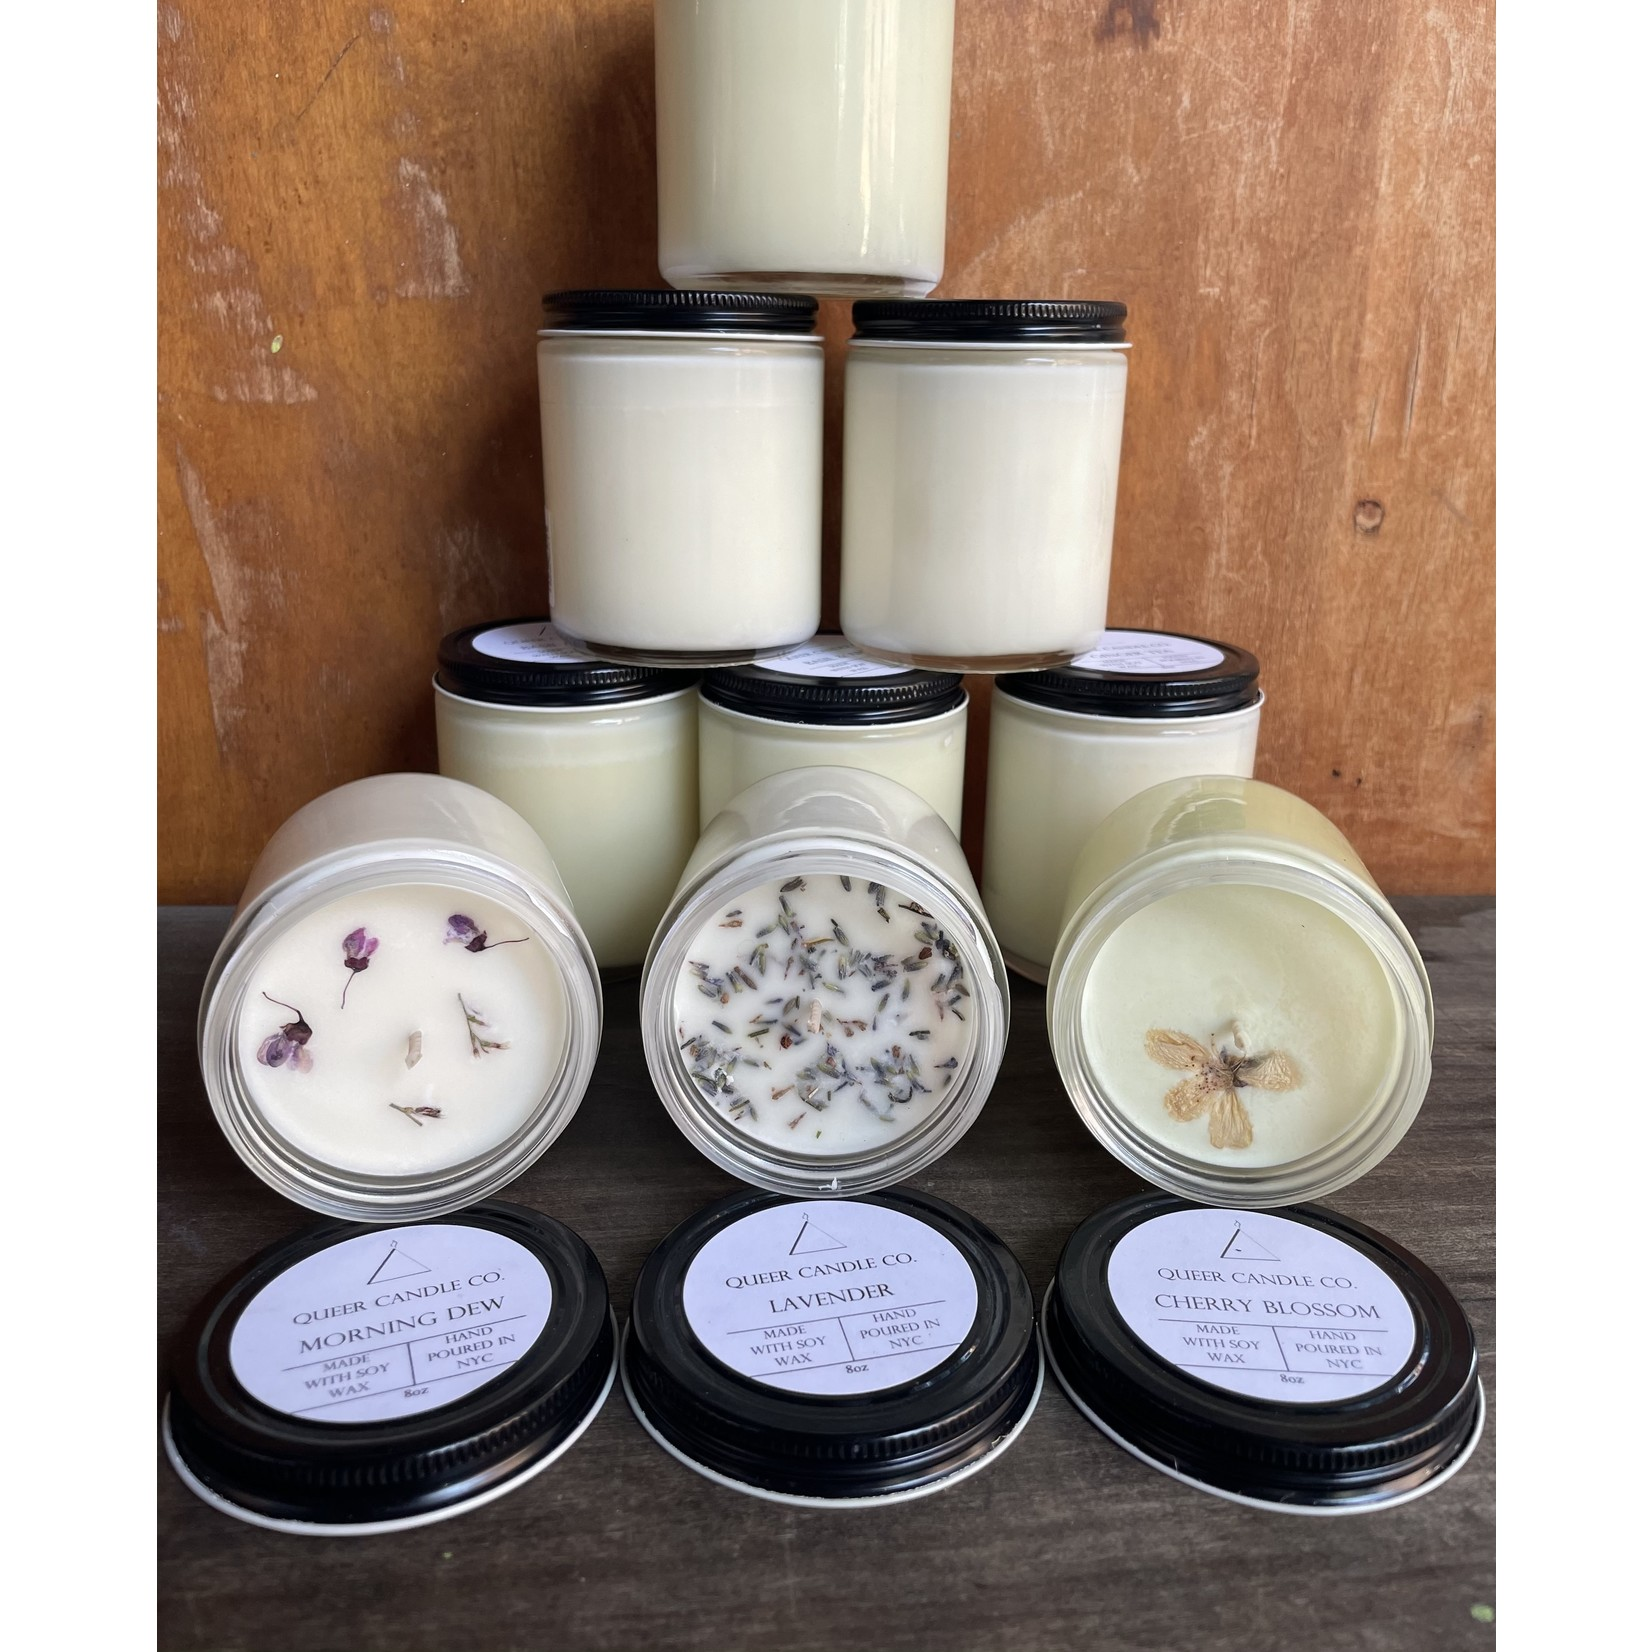 Queer Candle Company Collection